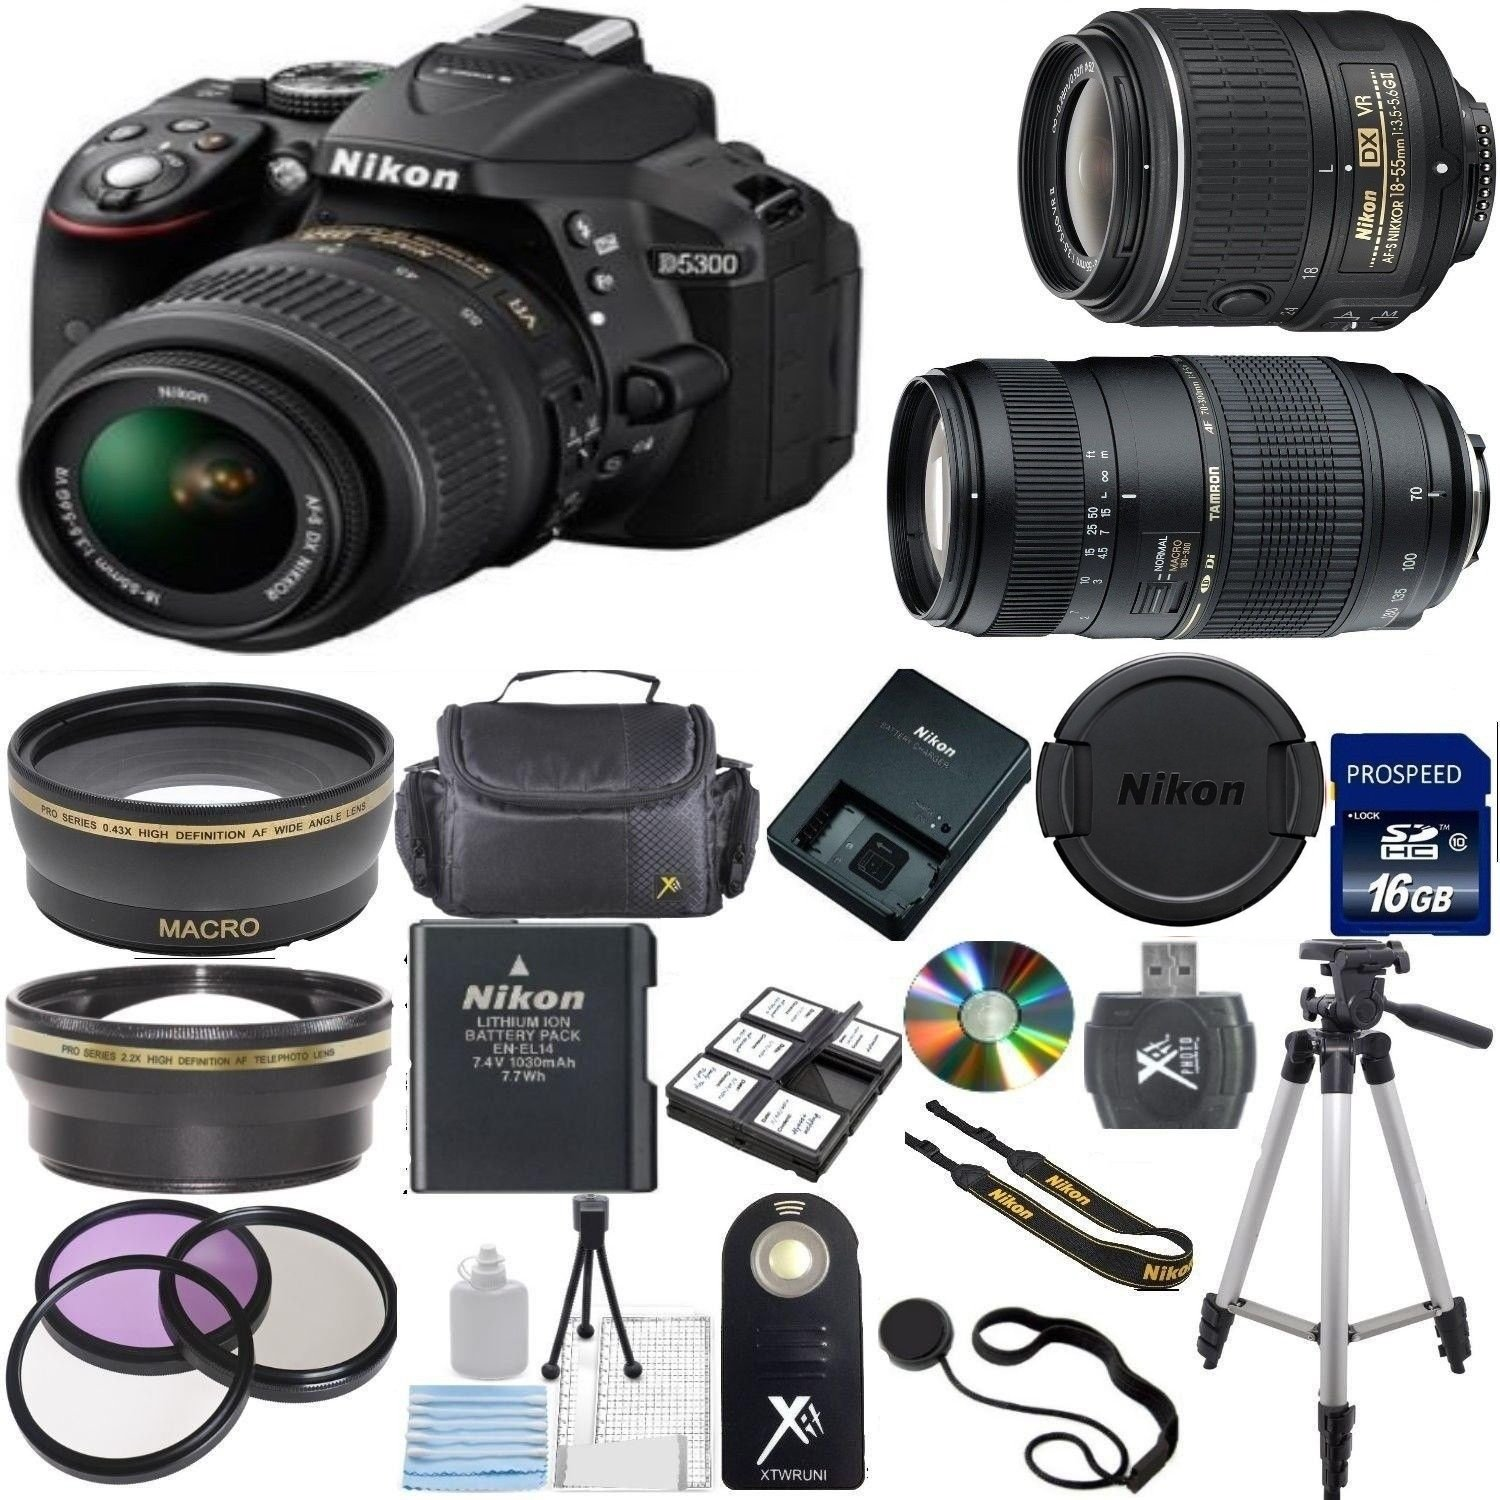 Nikon D5300 24.2 MP CMOS Digital SLR with 18-55mm f/3.5-5.6 AF-S DX VR NIKKOR Zoom Lens (Black) + Tamron 70-300mm Zoom Lens  ..